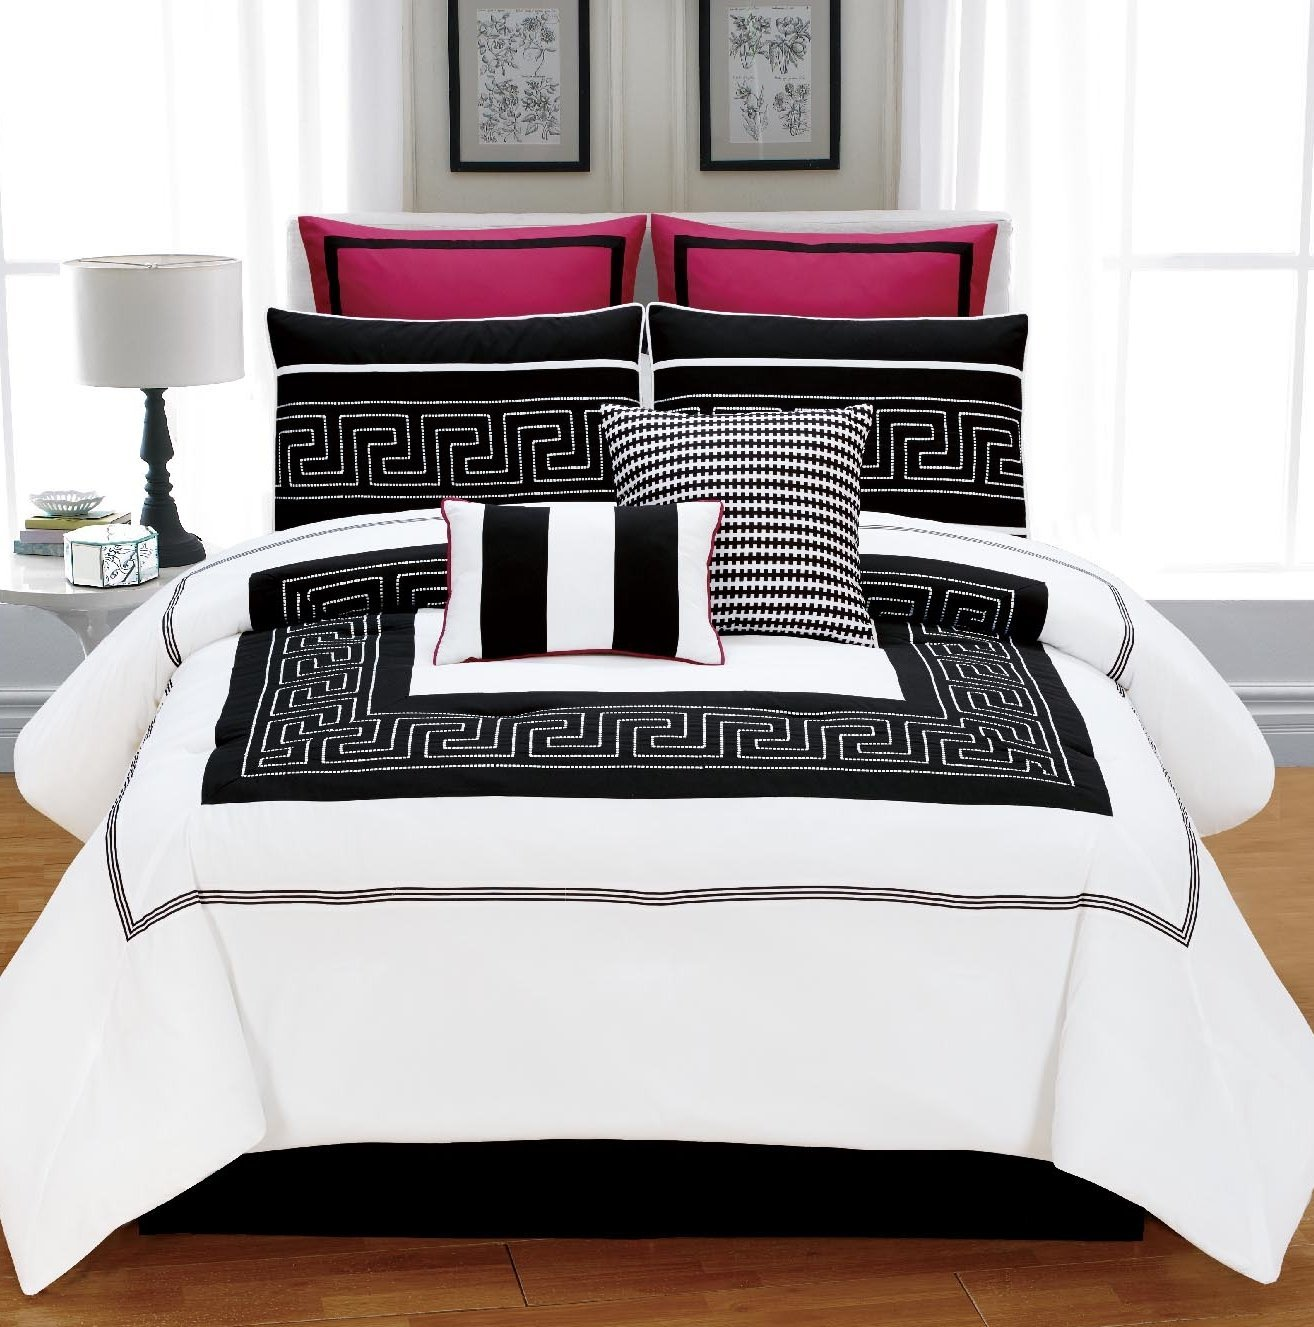 White and red bed sheets - White Black And Red Bedding 8 Pc Queen Comforter Pillow Bed Set